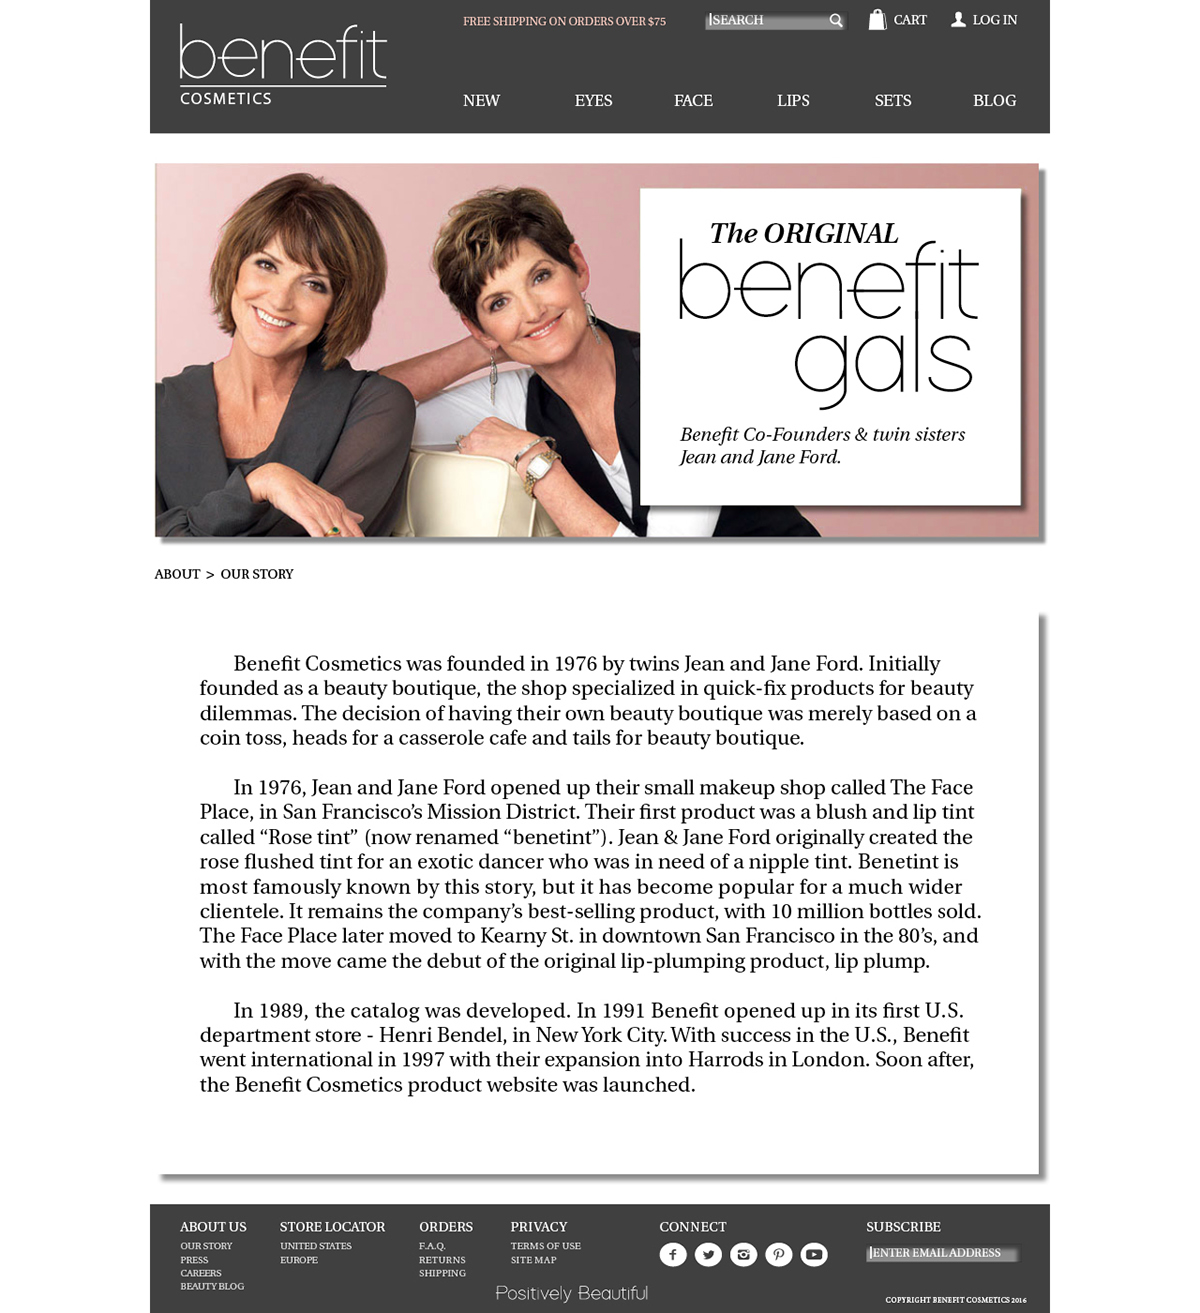 Benefit Rebranding on Behance